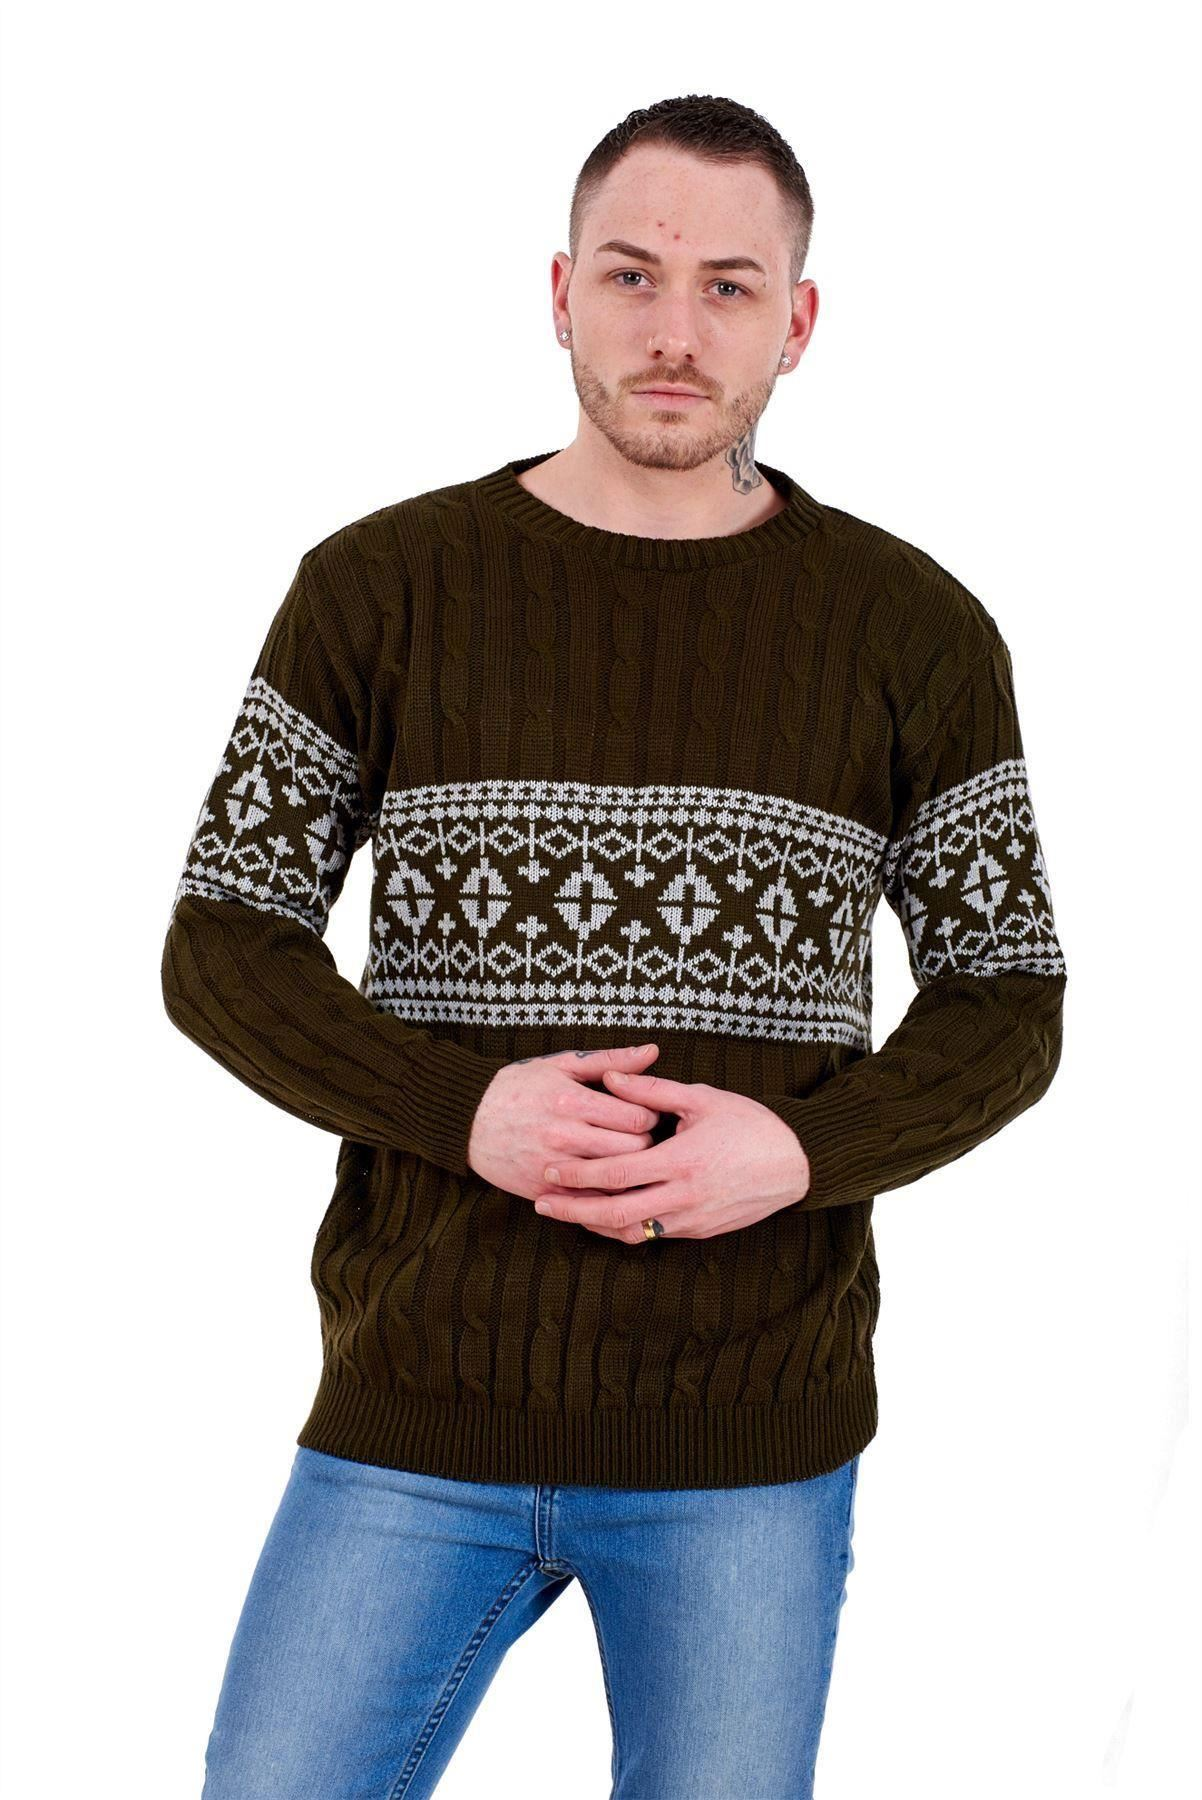 Mens-New-Cable-Knit-Jacquard-Long-Sleeve-Pullover-Jumper-Sweater-S-to-XL thumbnail 17